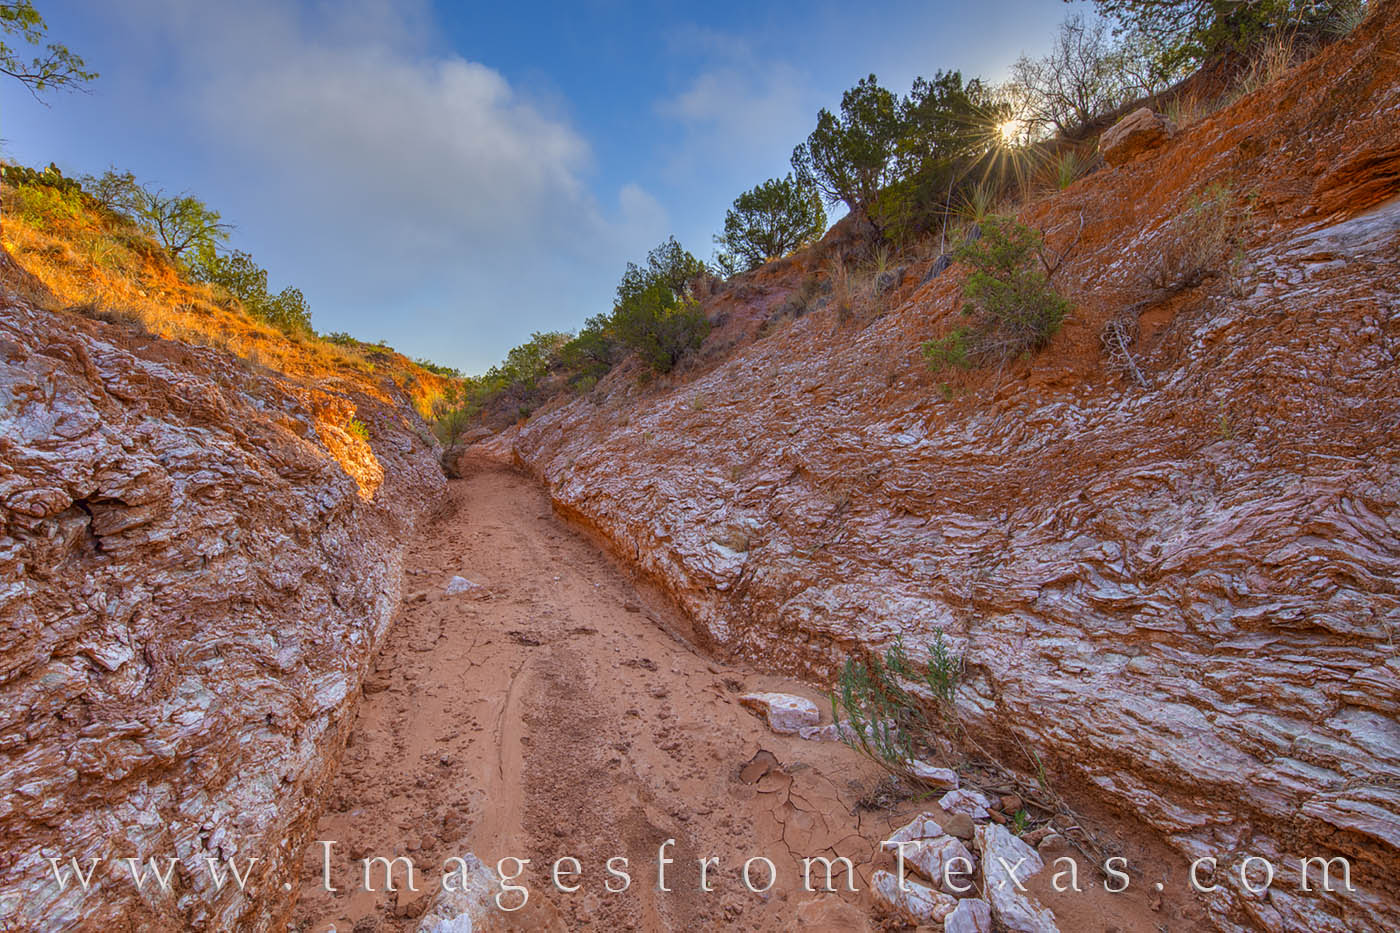 White layers of gypsum fill this wash in Caprock Canyon State Park. If not for the 95 degree temps, you might think it was snow...